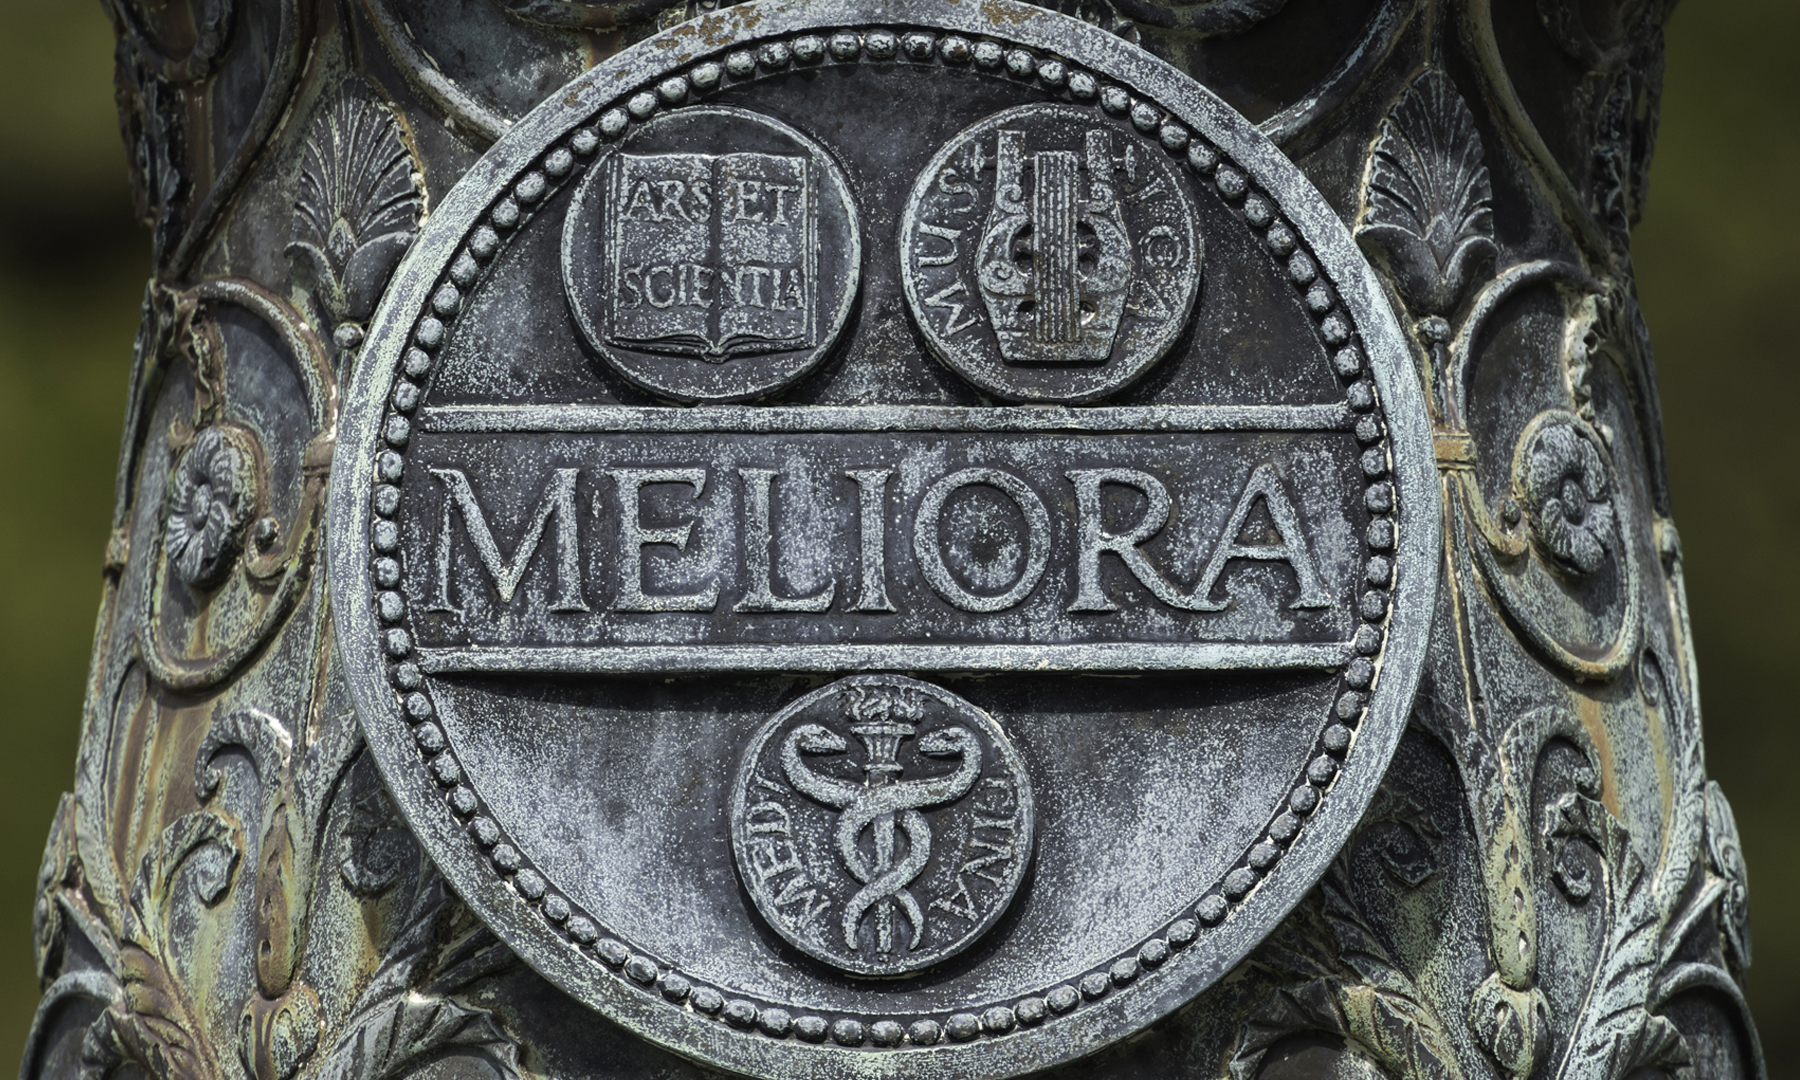 Meliora flagpole seal on River Campus